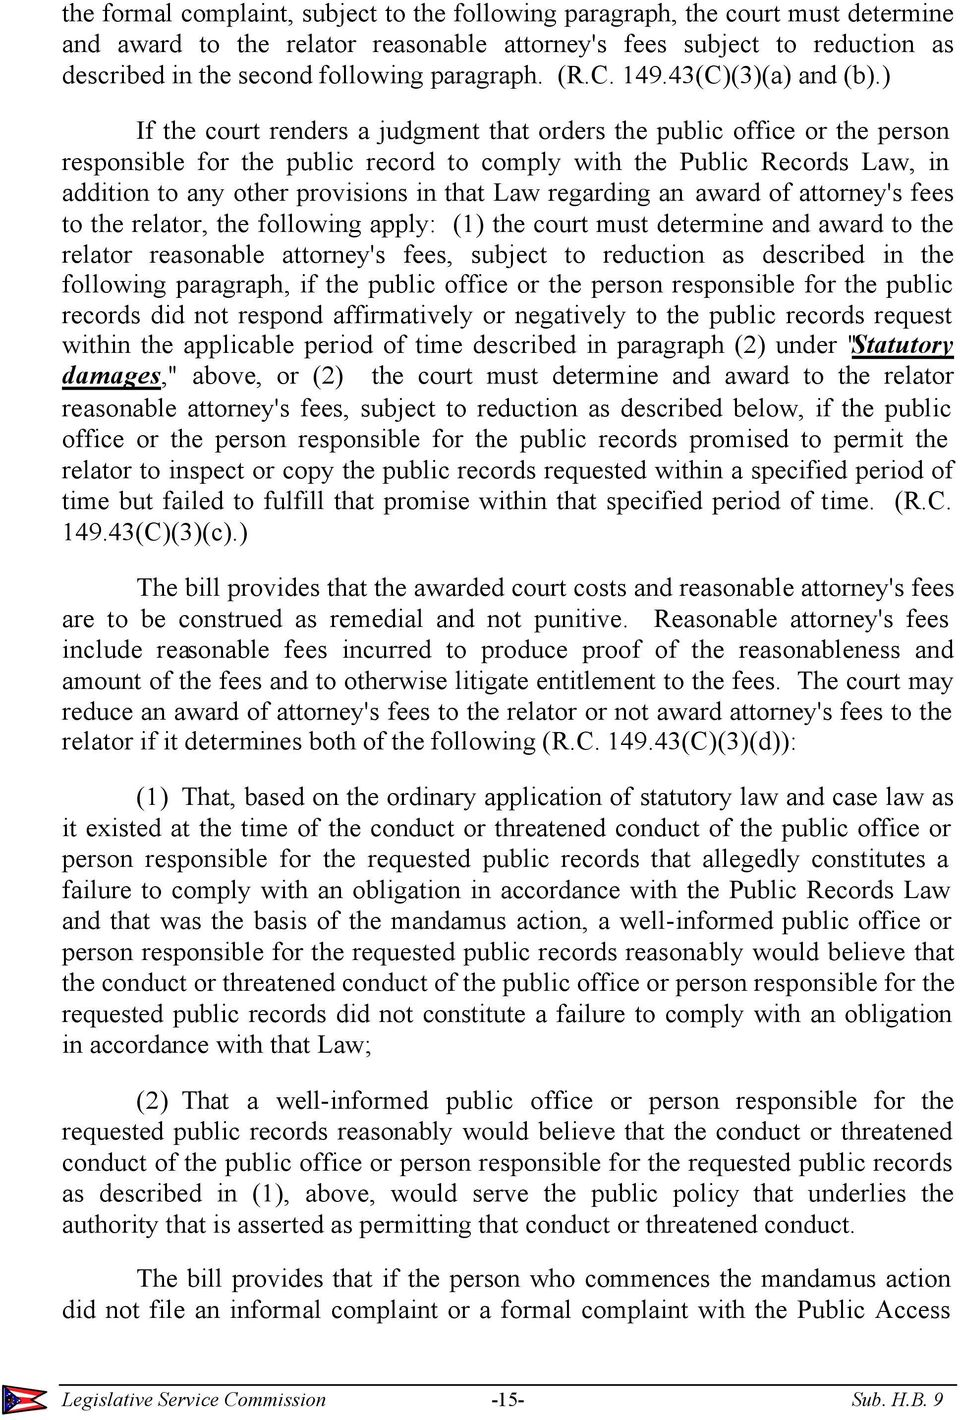 ) If the court renders a judgment that orders the public office or the person responsible for the public record to comply with the Public Records Law, in addition to any other provisions in that Law